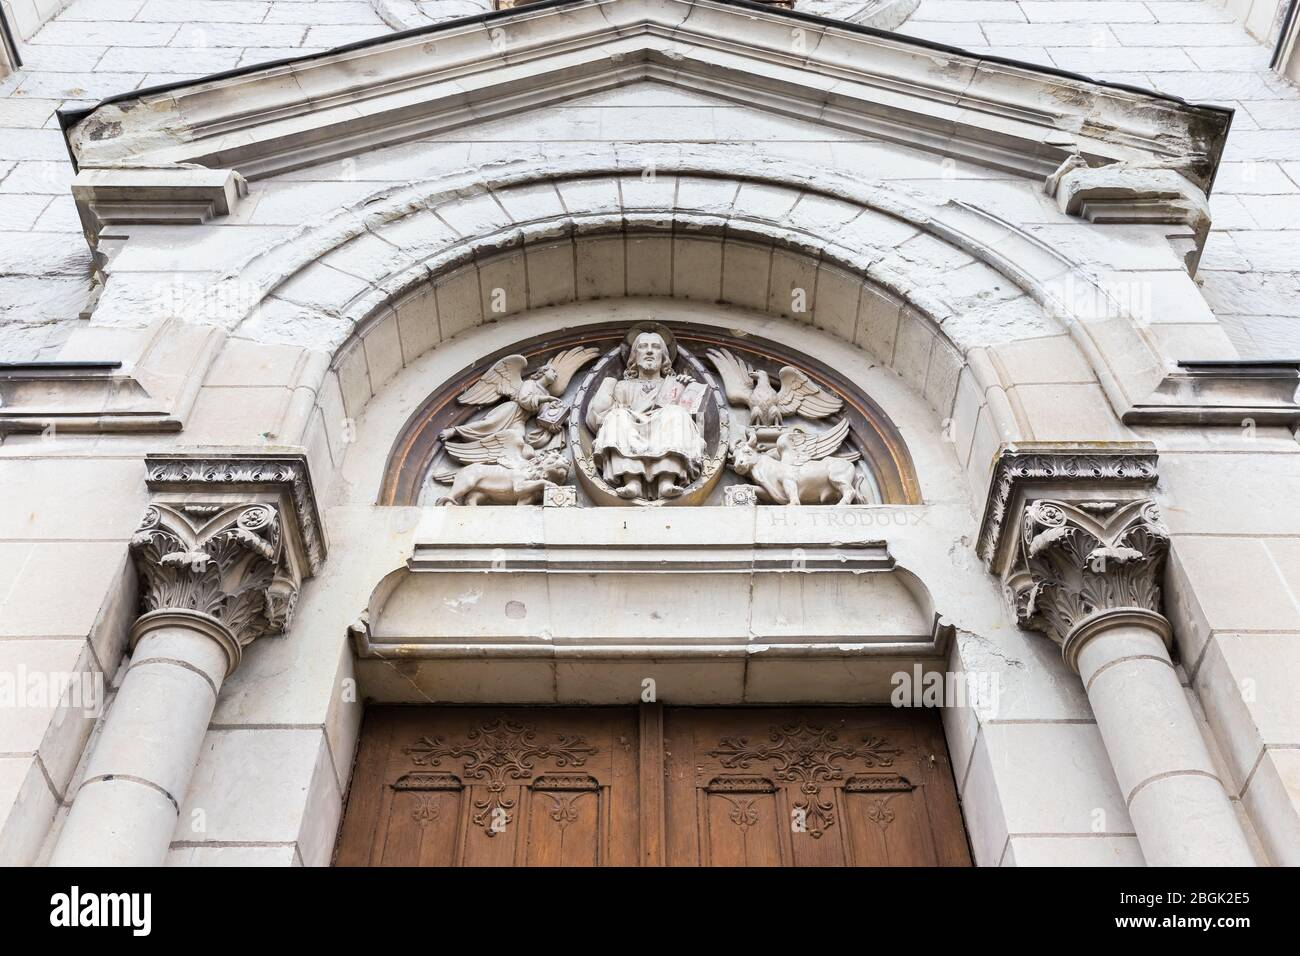 architectural detail of the Romanian Orthodox Parish Saint Nectaire de Tours and the Saint Francois chapel in the city center on a winter day Stock Photo